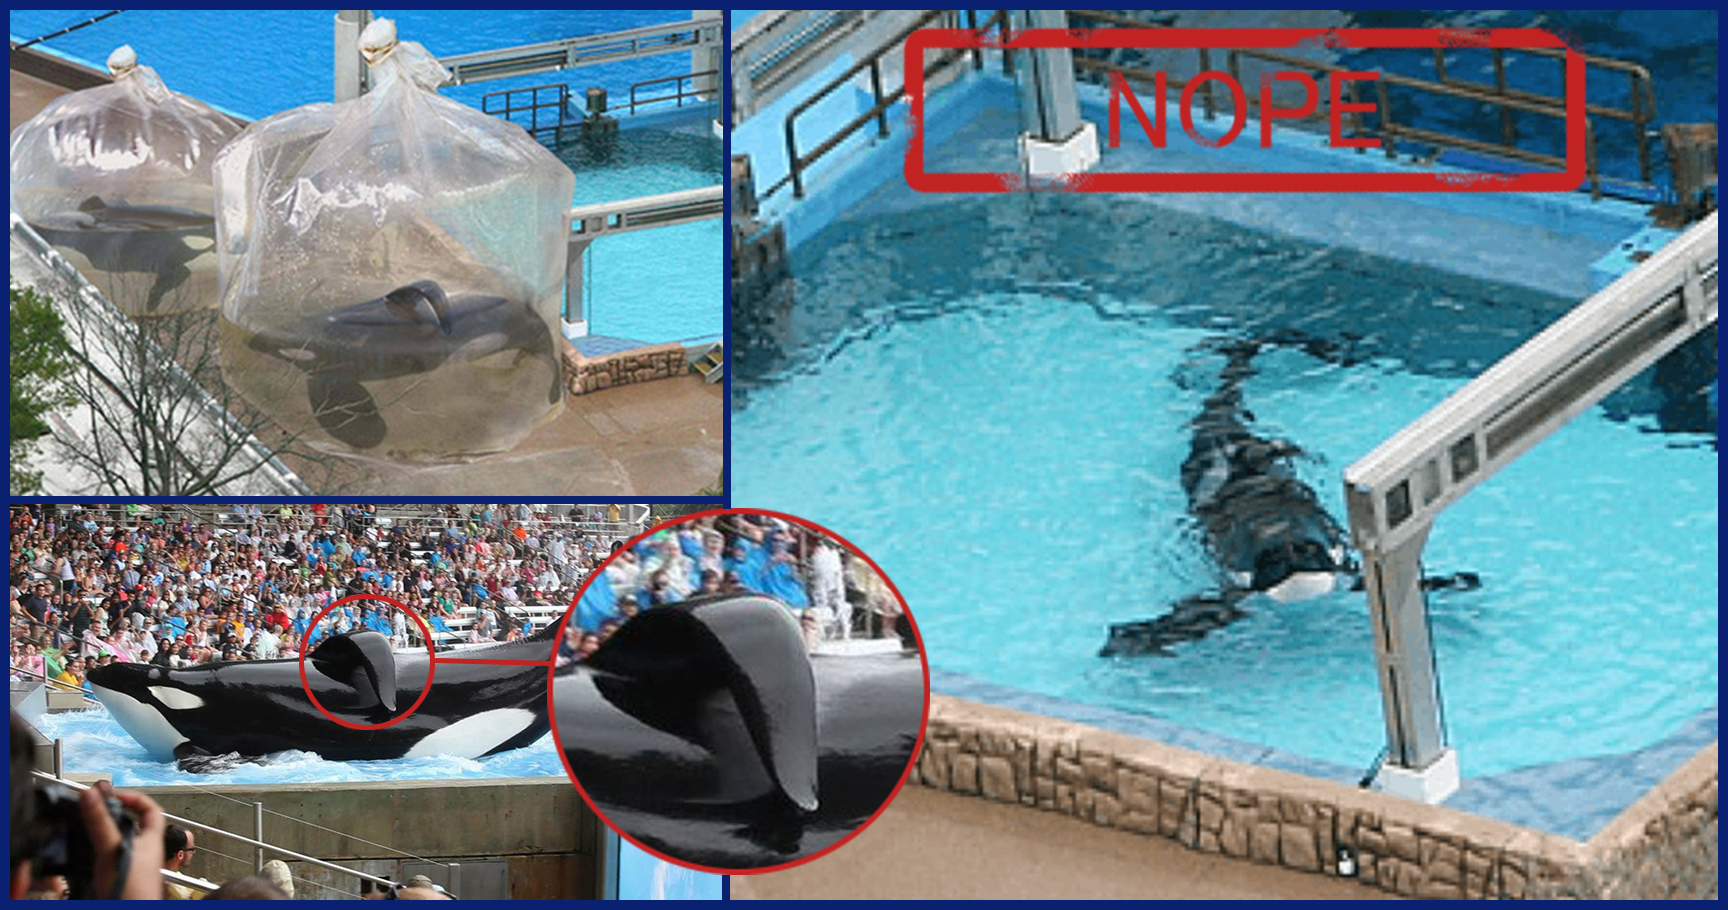 Wild About Harry >> Outrageous Images that Prove SeaWorld Should Be Shut Down